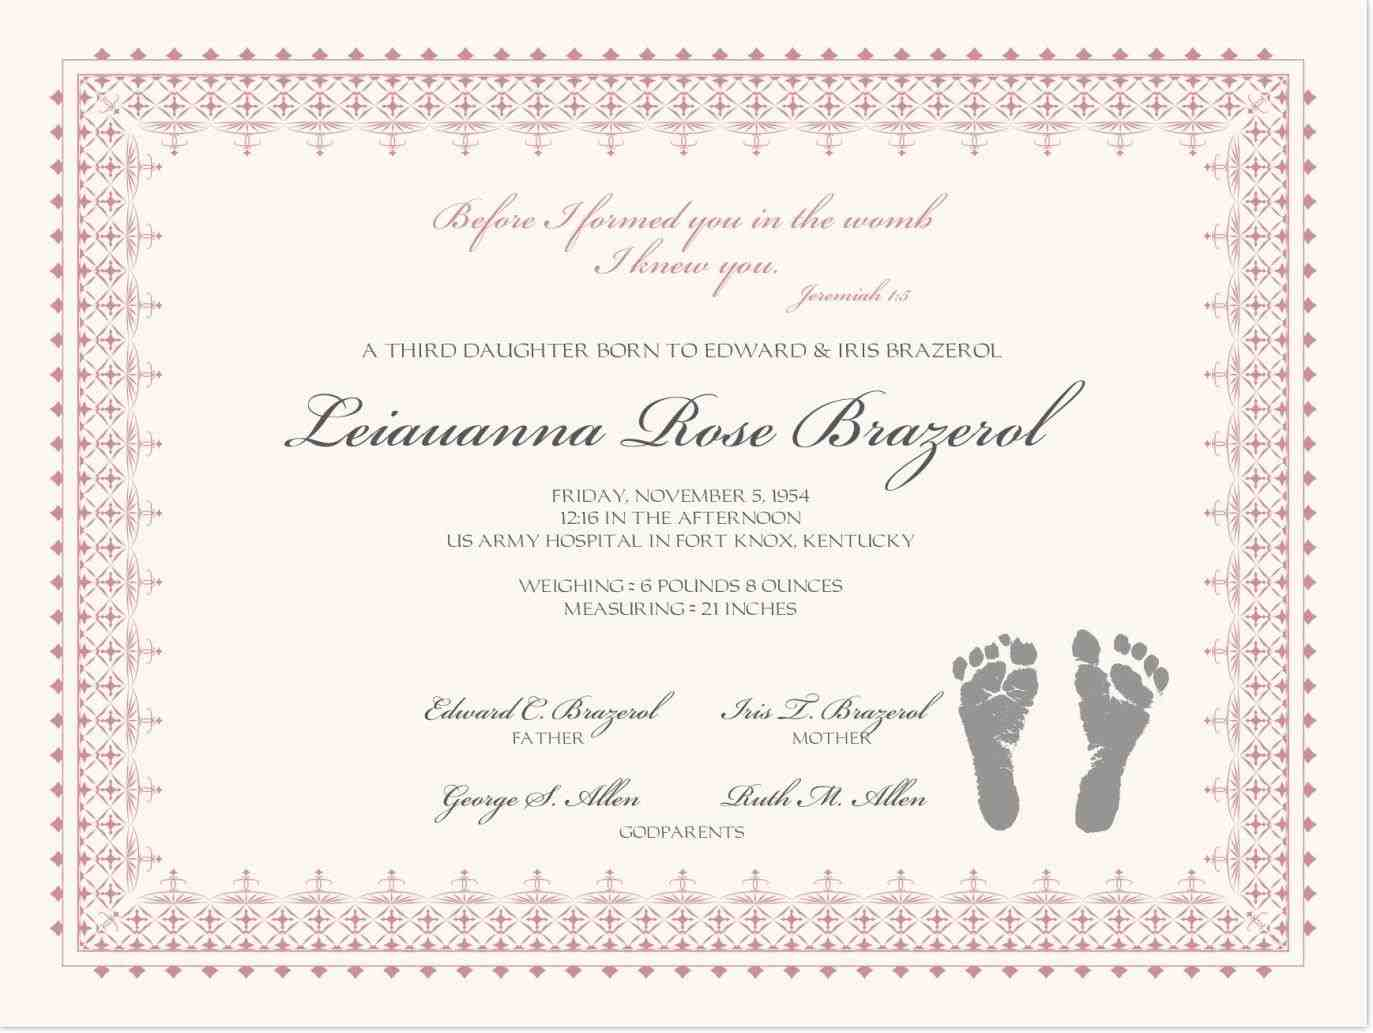 This is an image of Free Printable Baby Dedication Certificates for infant dedication